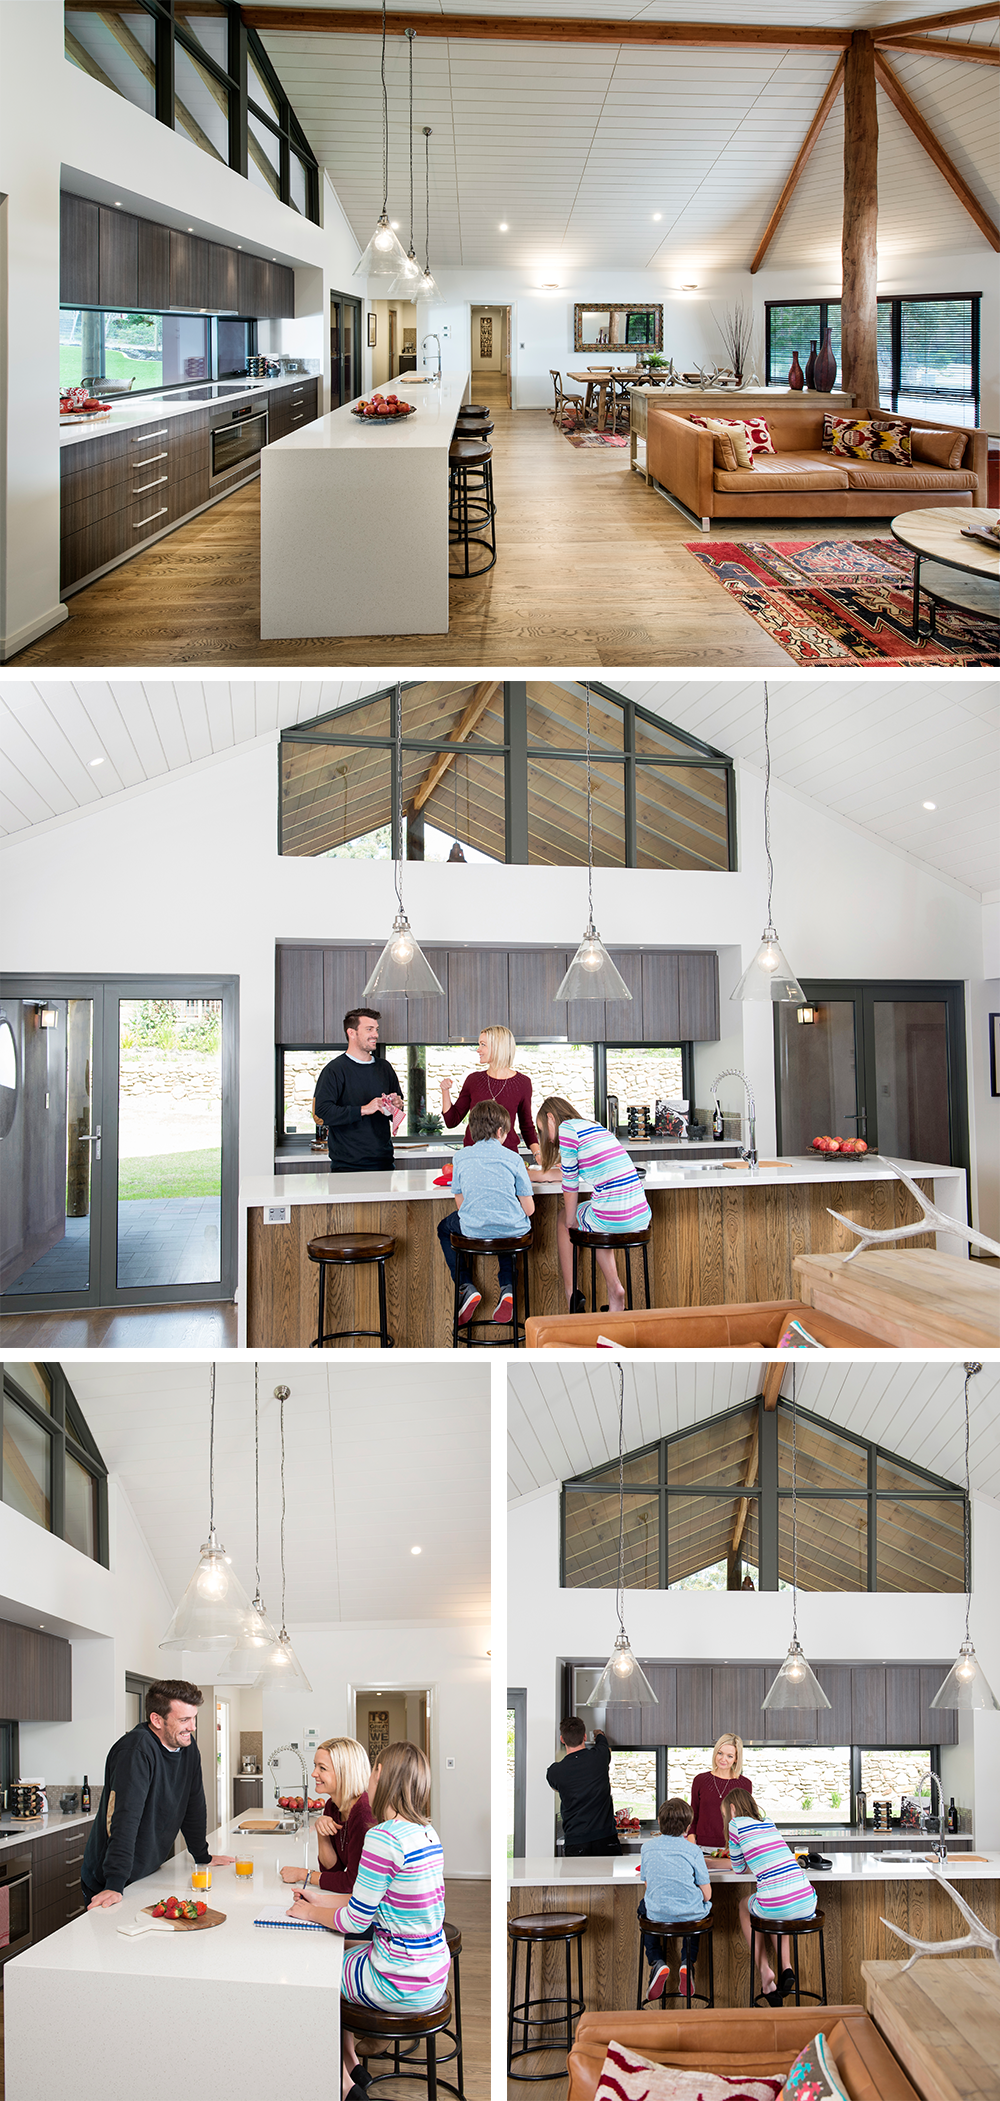 Images of open plan kitchen with family sitting down for breakfast.